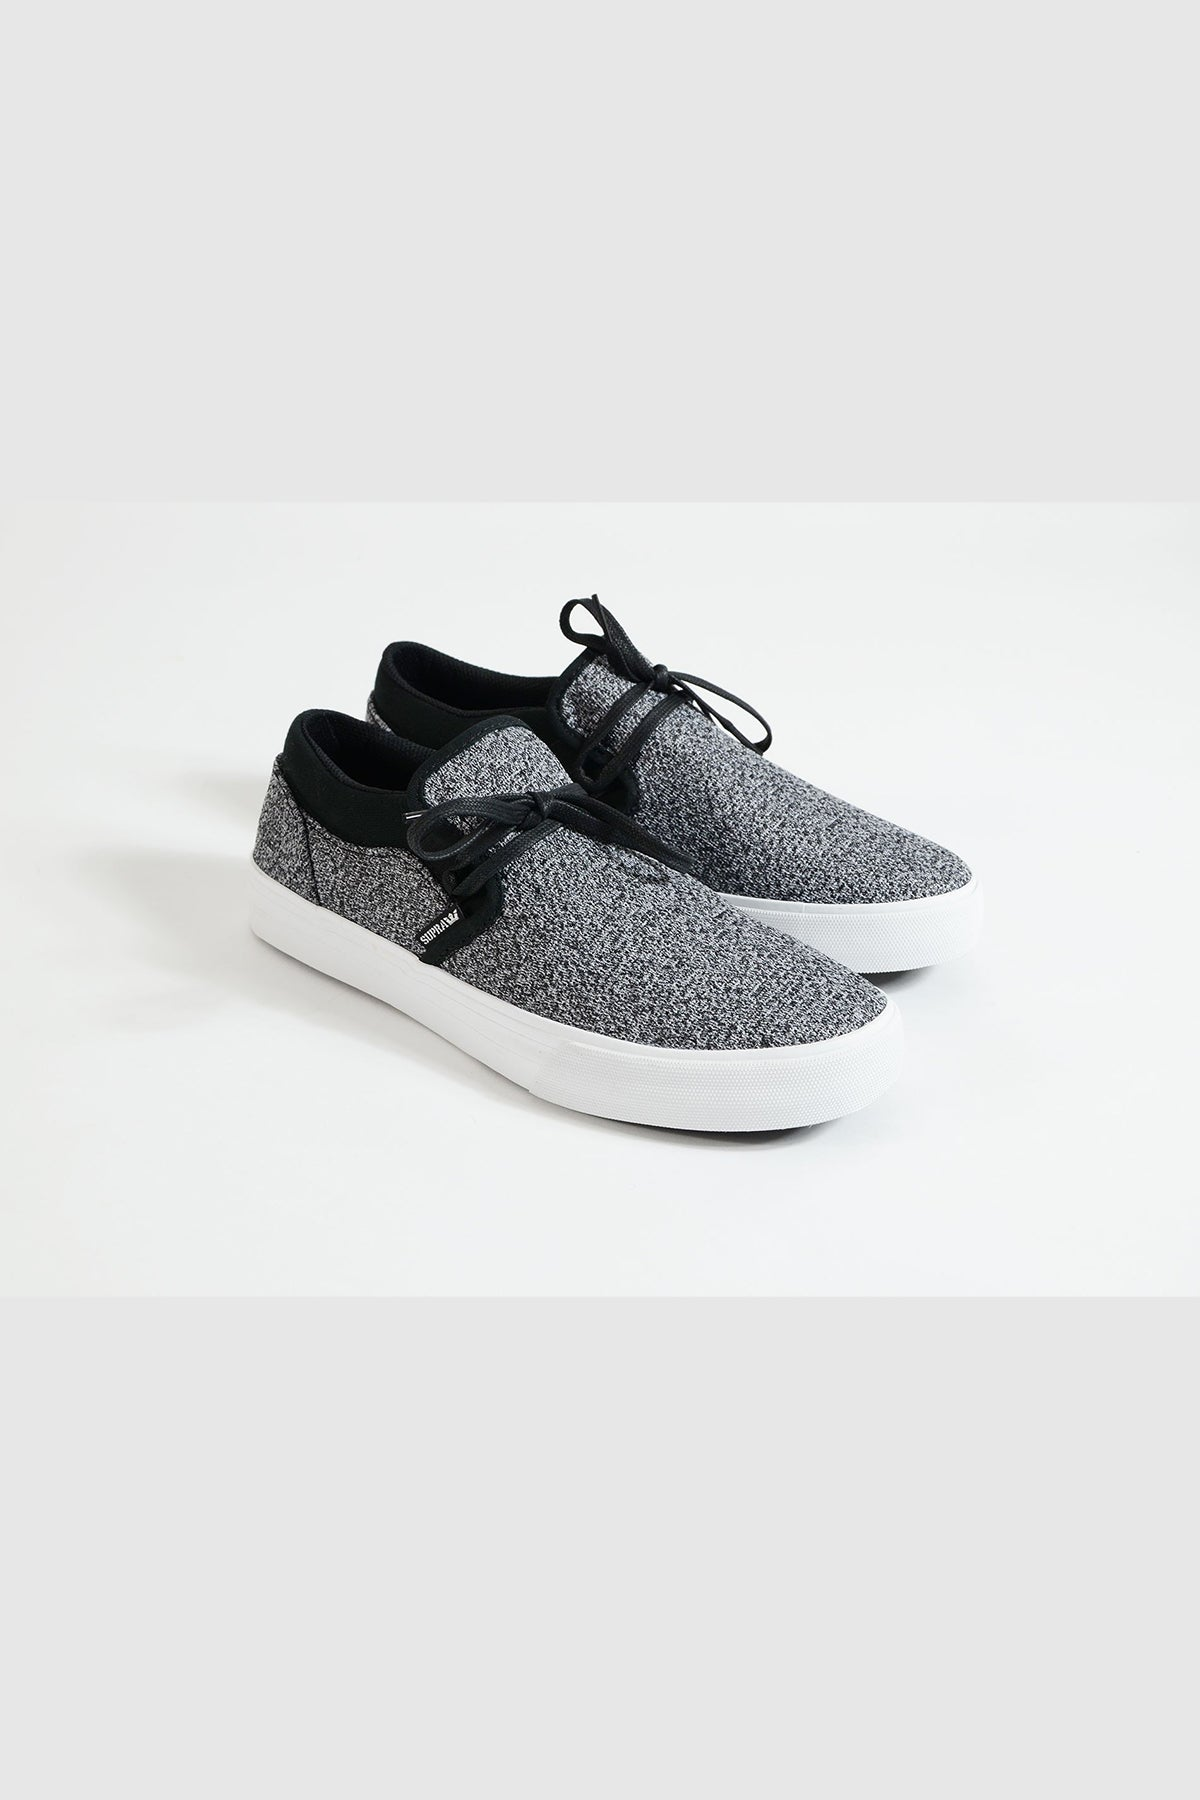 Supra - Cuba (Charcoal Heather/Black-White)